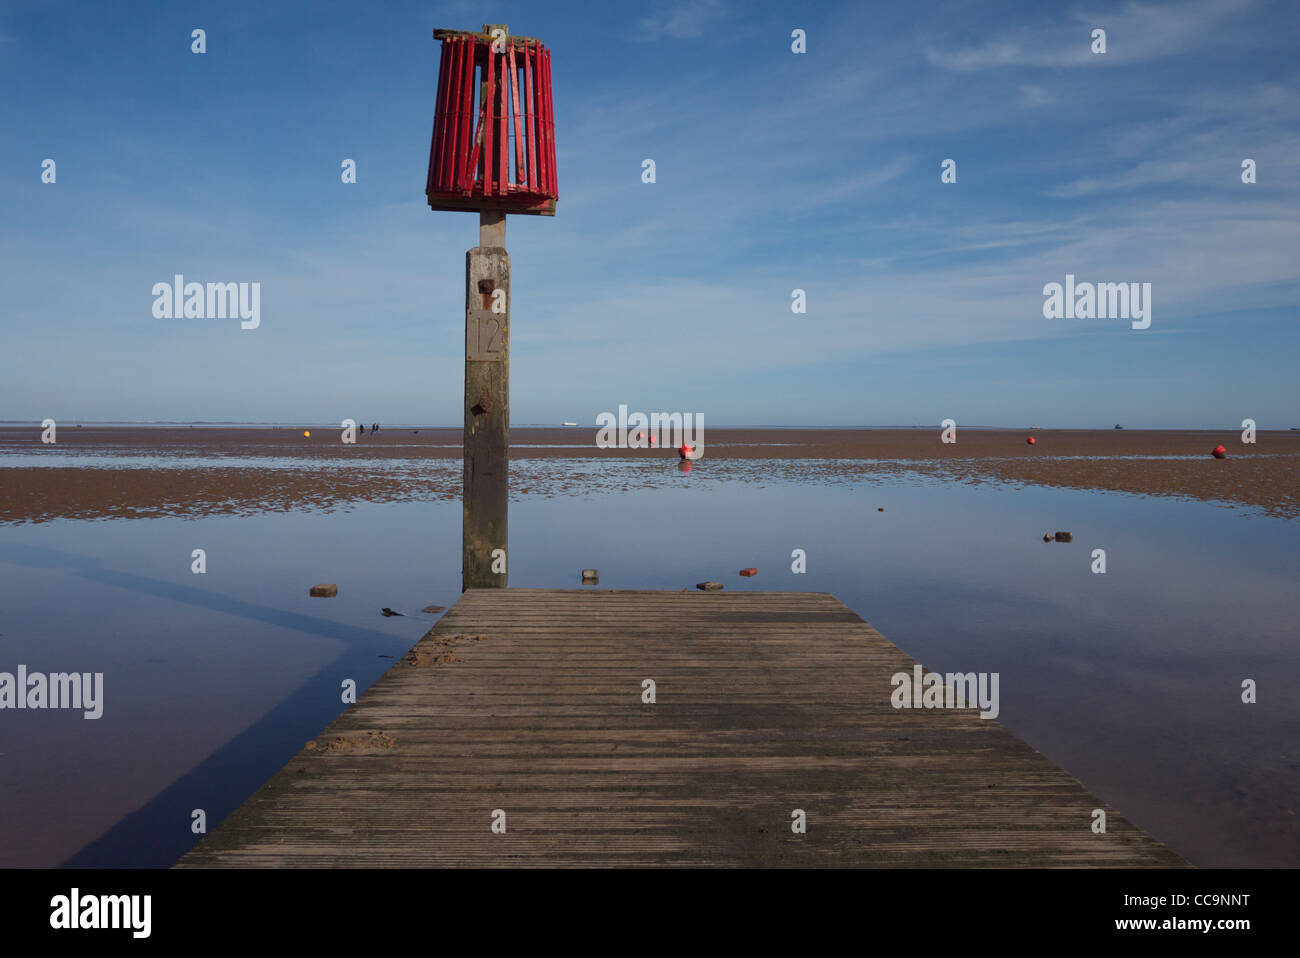 High tide marker & jetty at Cleethorpes beach - Stock Image